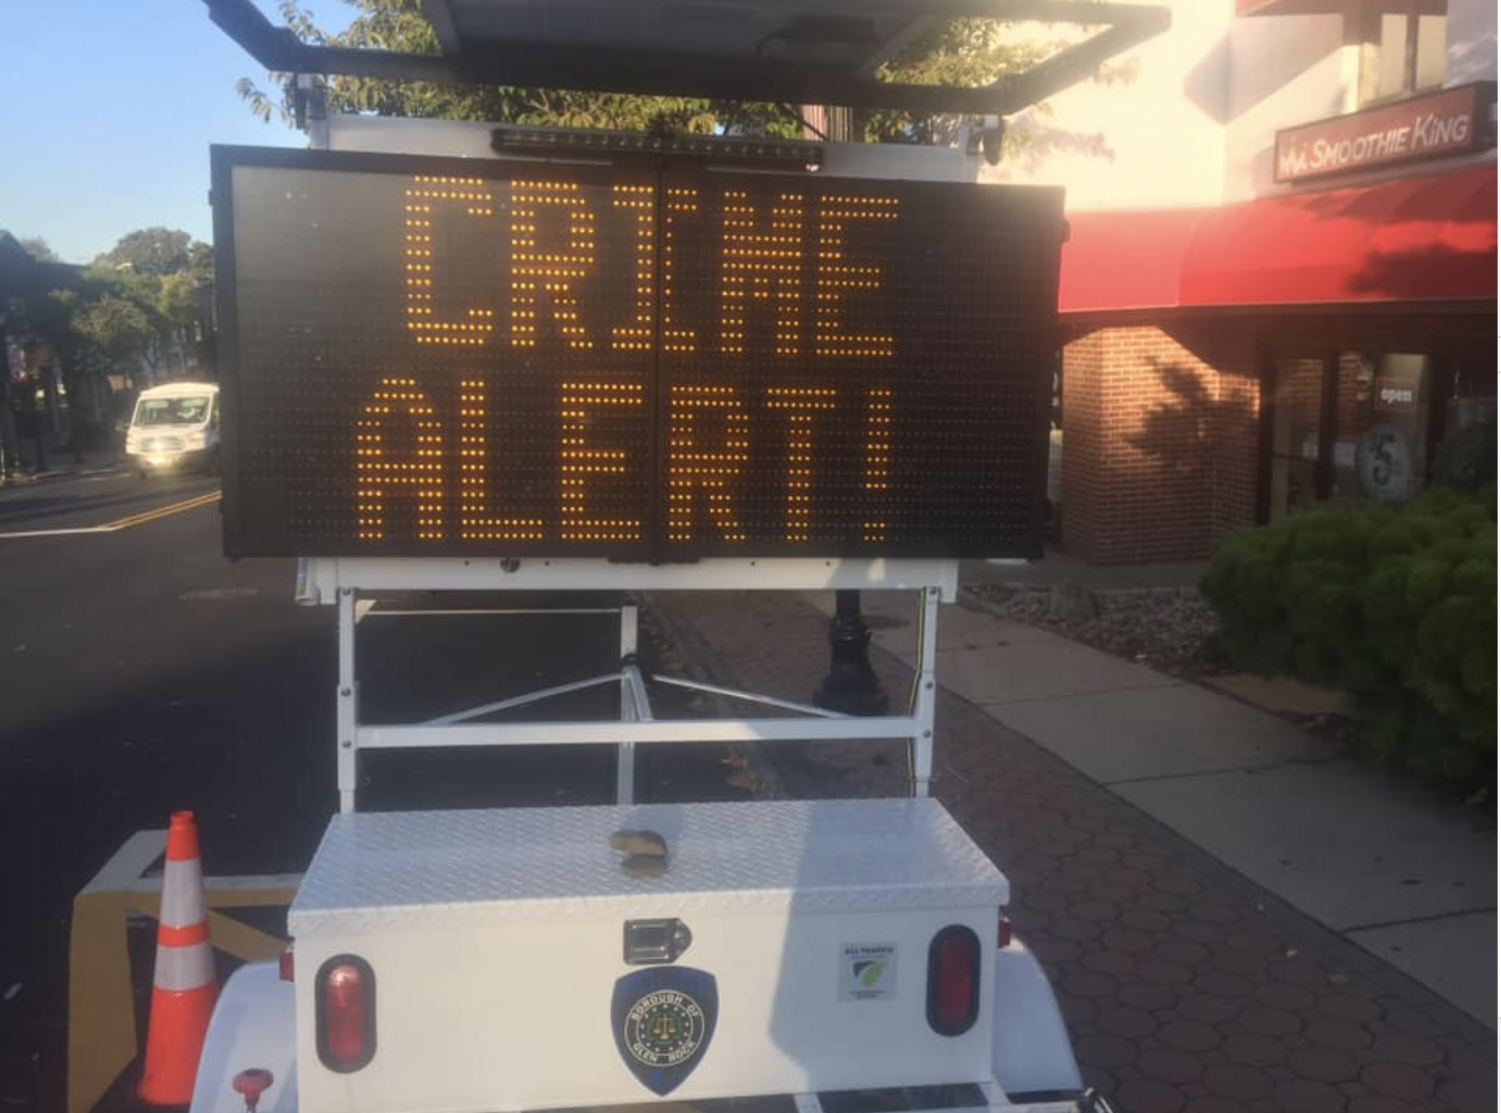 As part of the Glen Rock Police Department's effort to combat recent vehicle crimes, a digital sign warns of vehicle theft in downtown Glen Rock.